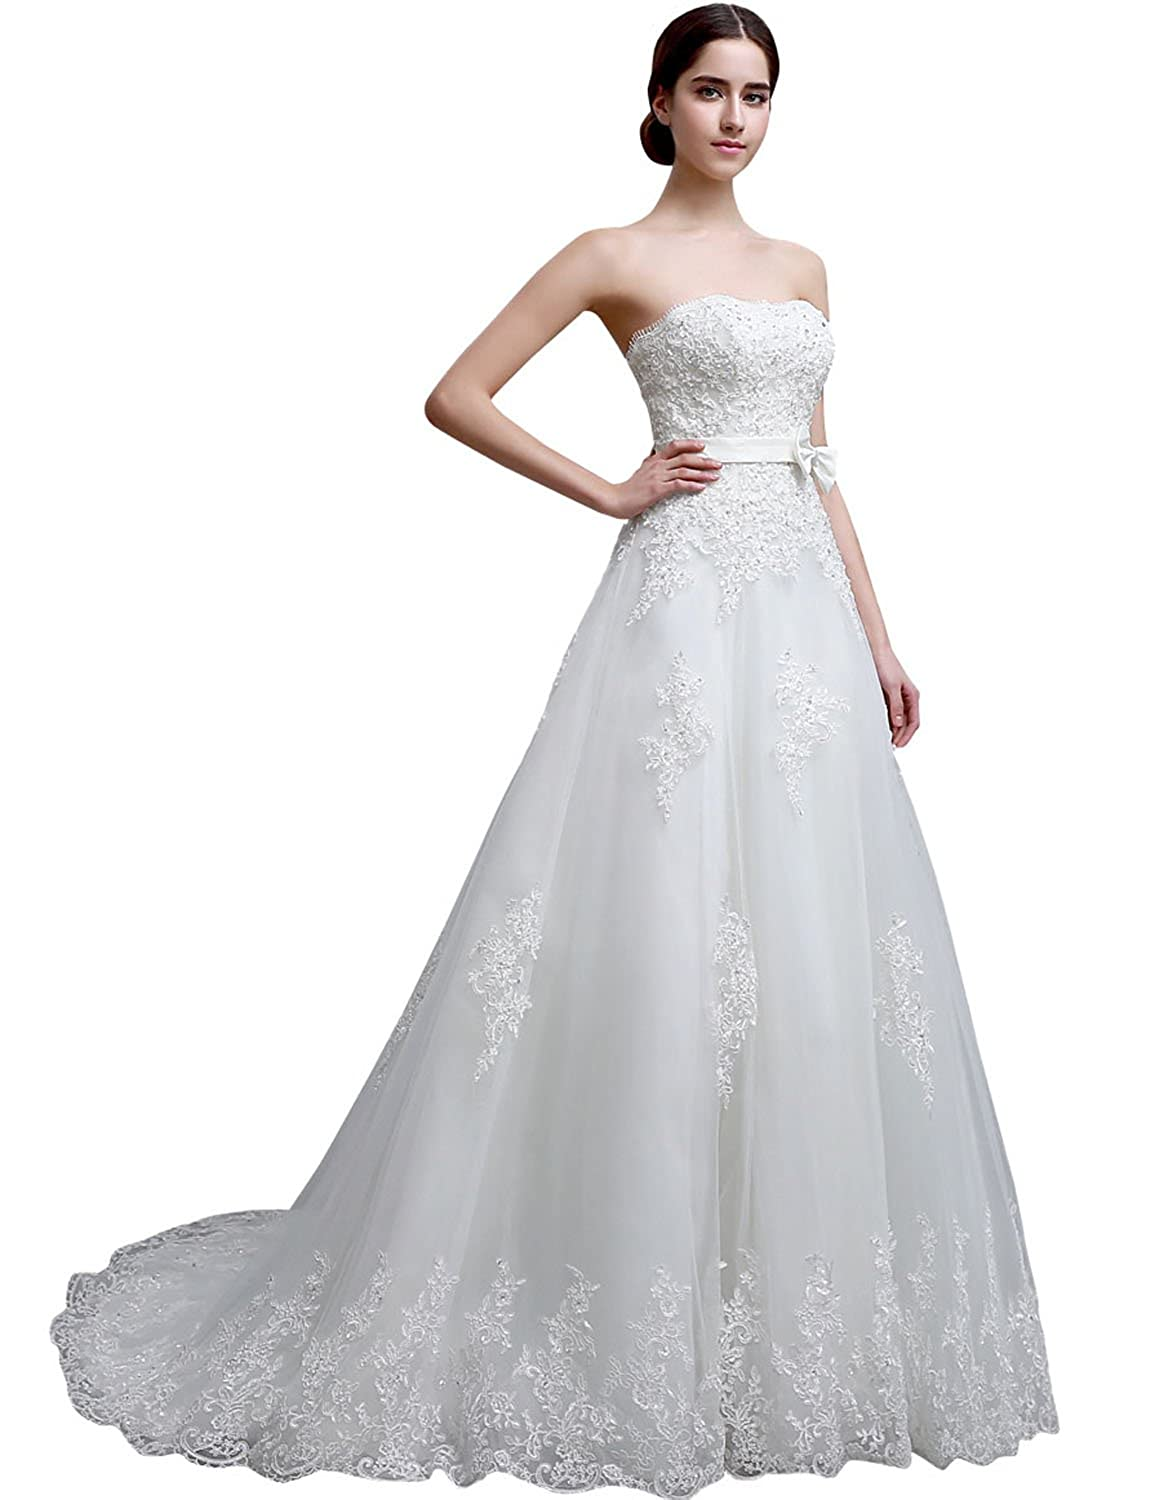 Sarahbridal Women's A-line Strapless Brides Wedding Dresses Lace Bridal Gowns with Beaded SLGM15